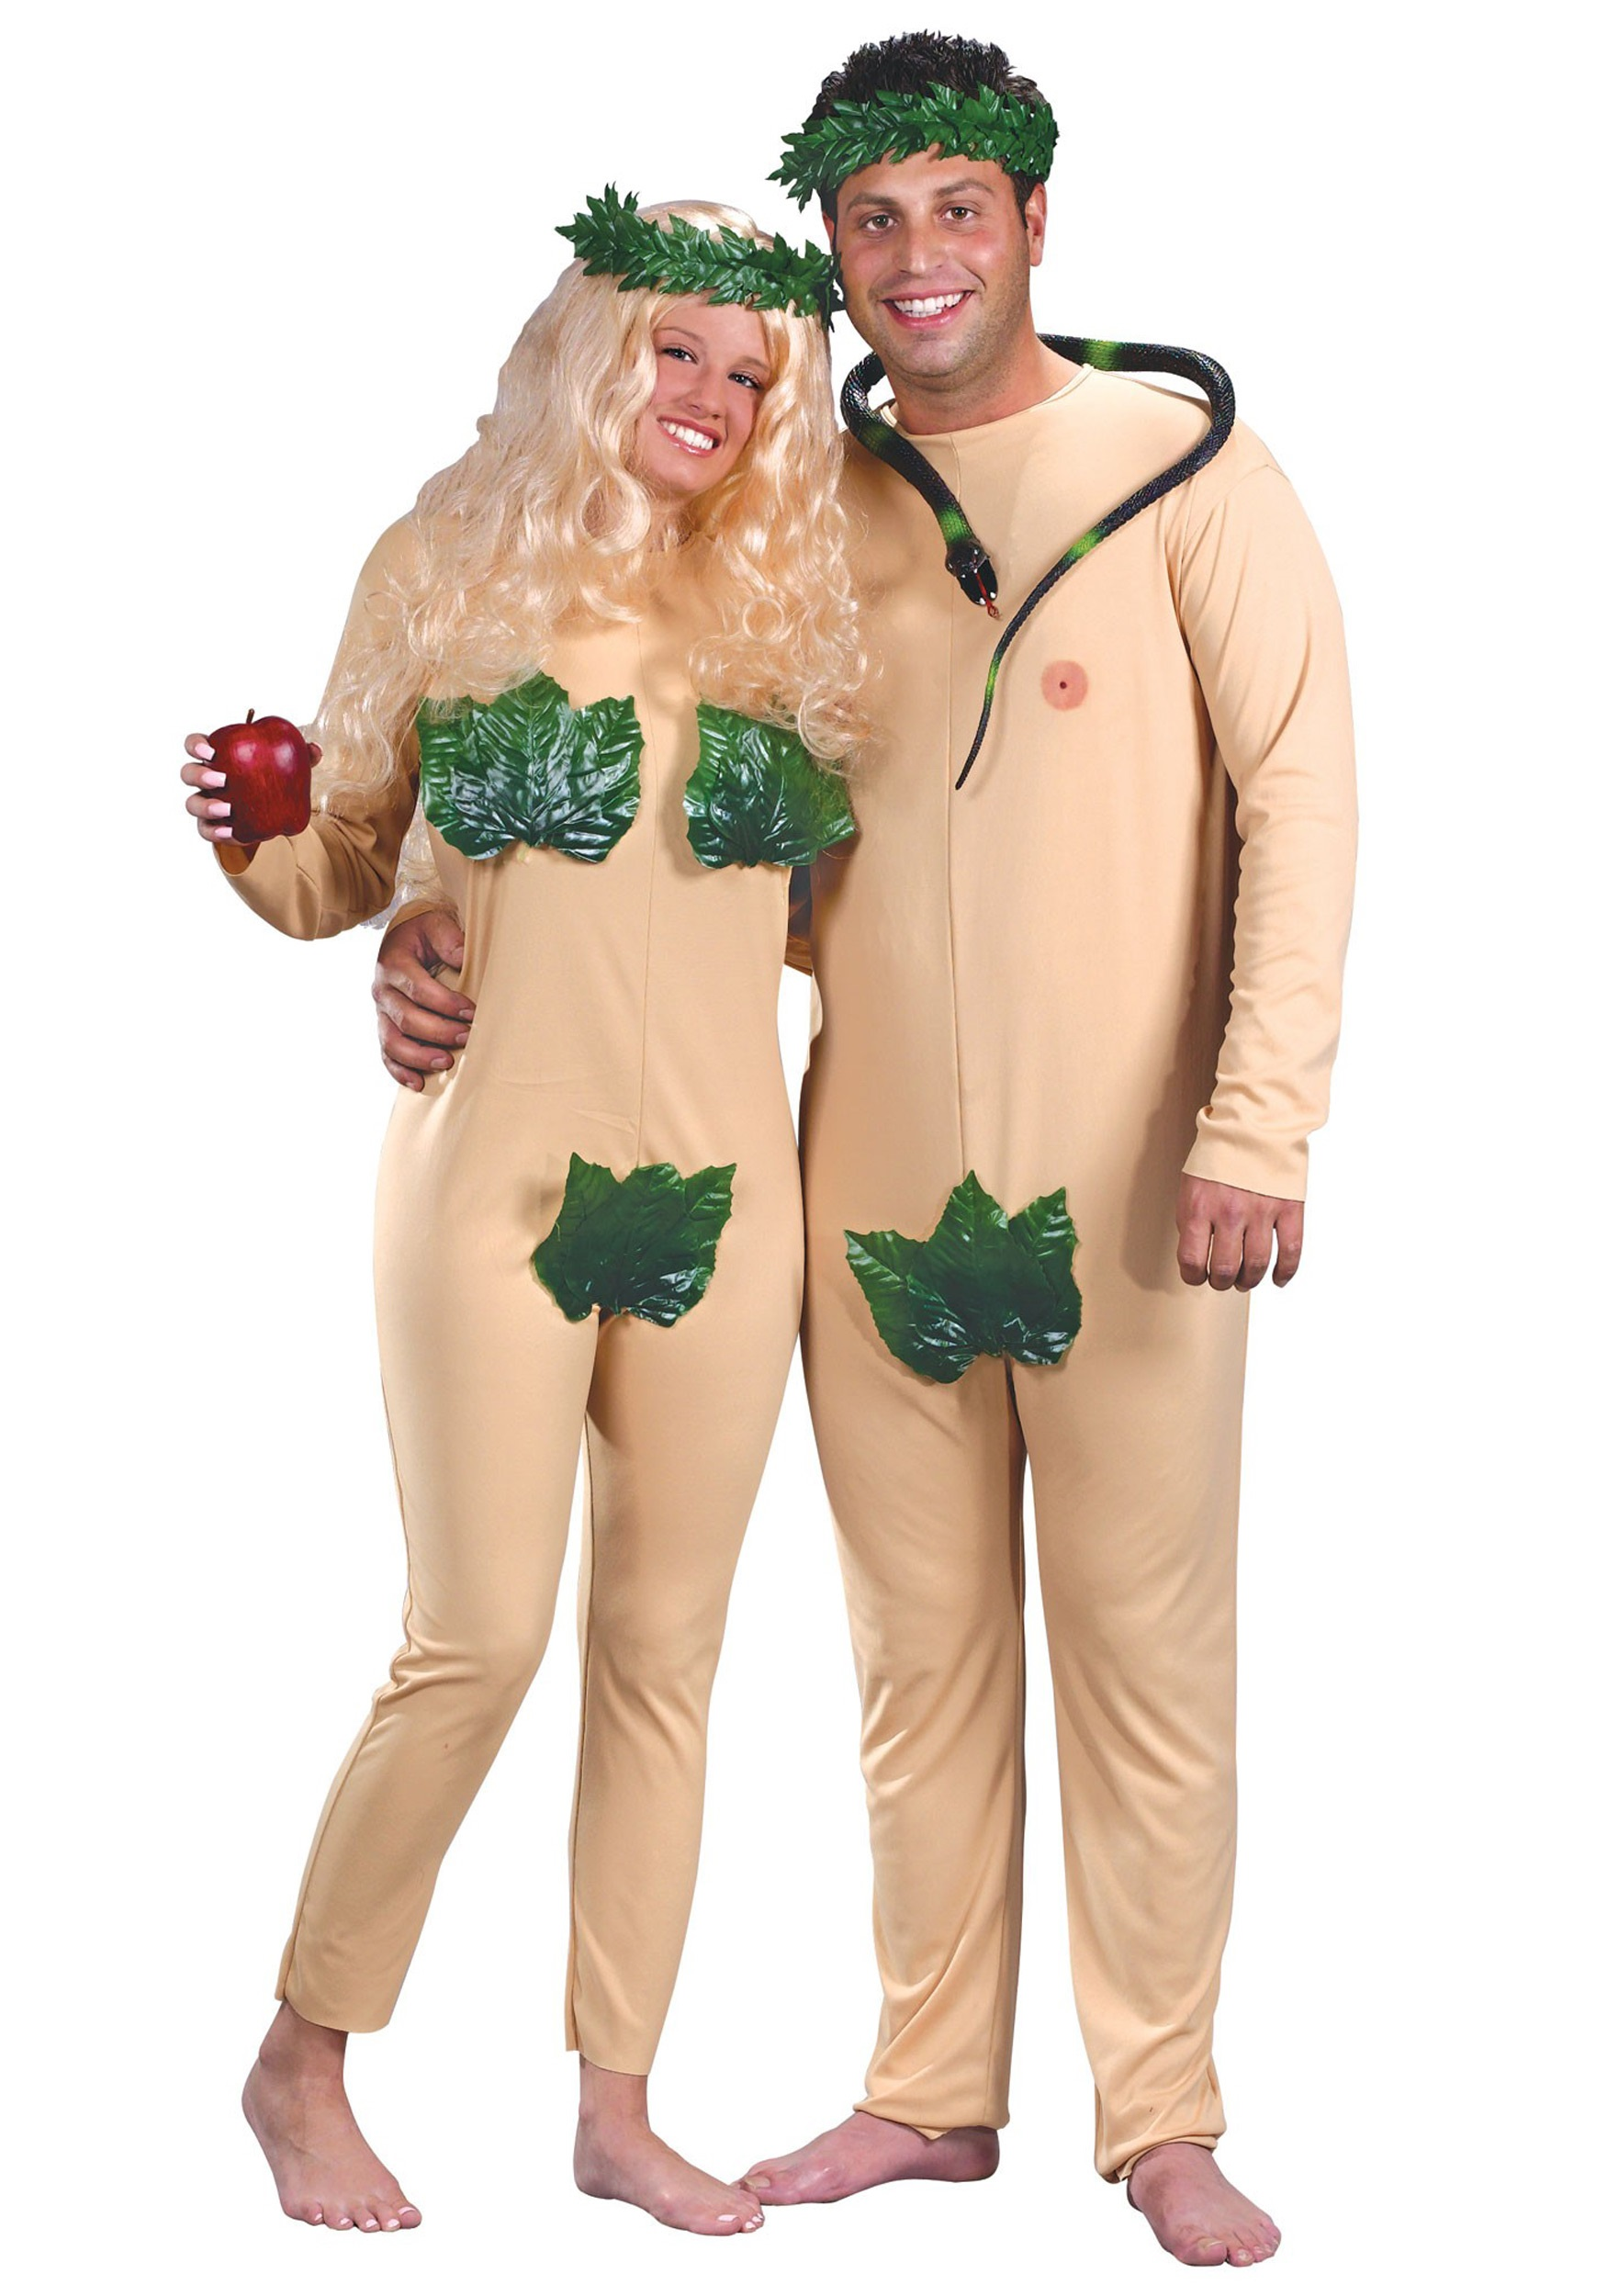 Adam and Eve Costume